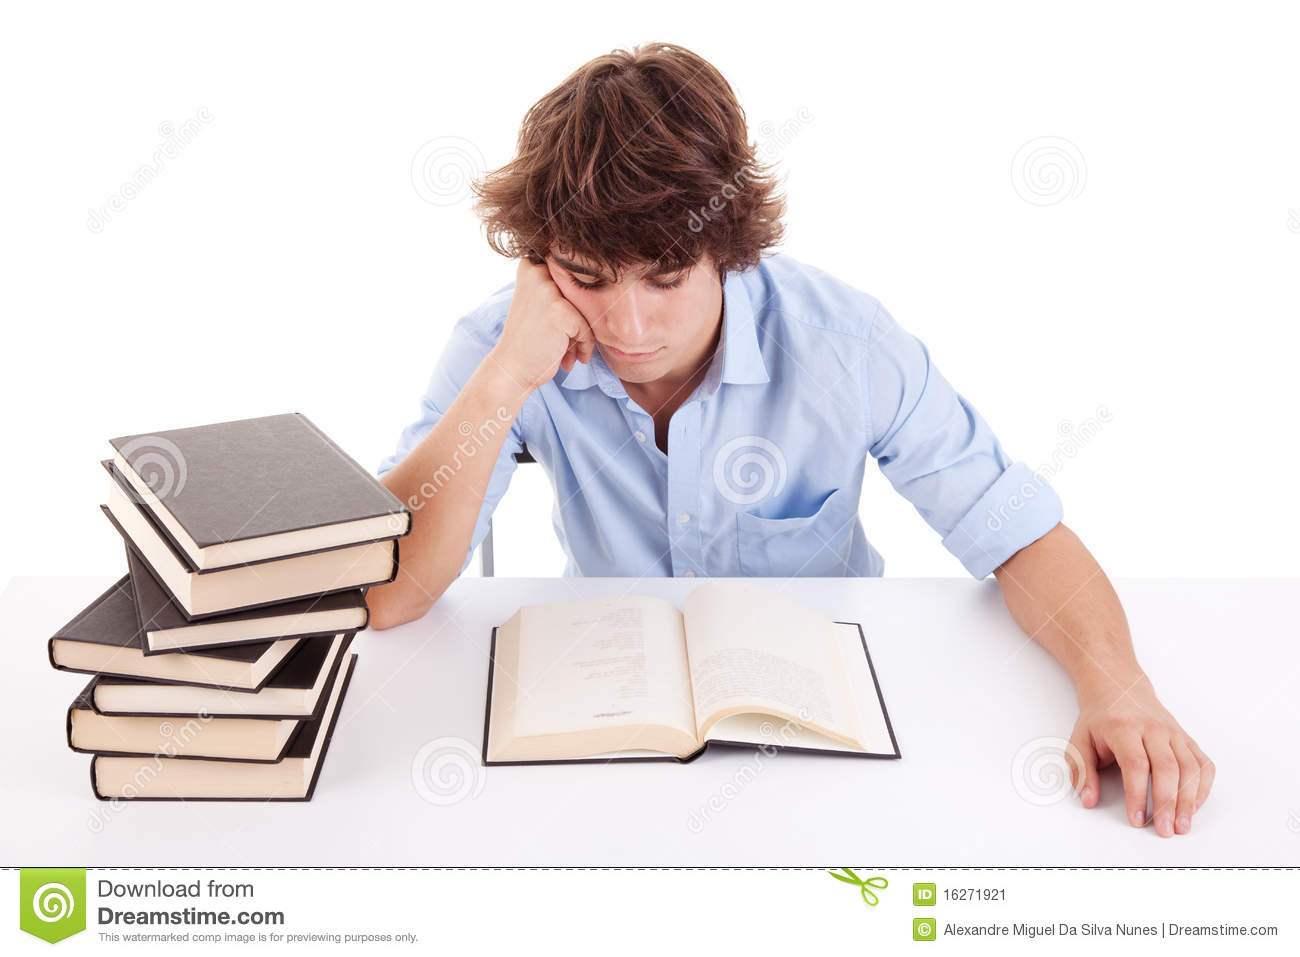 Studying And Reading A Book On His Desk Stock Image - Image: 16271921